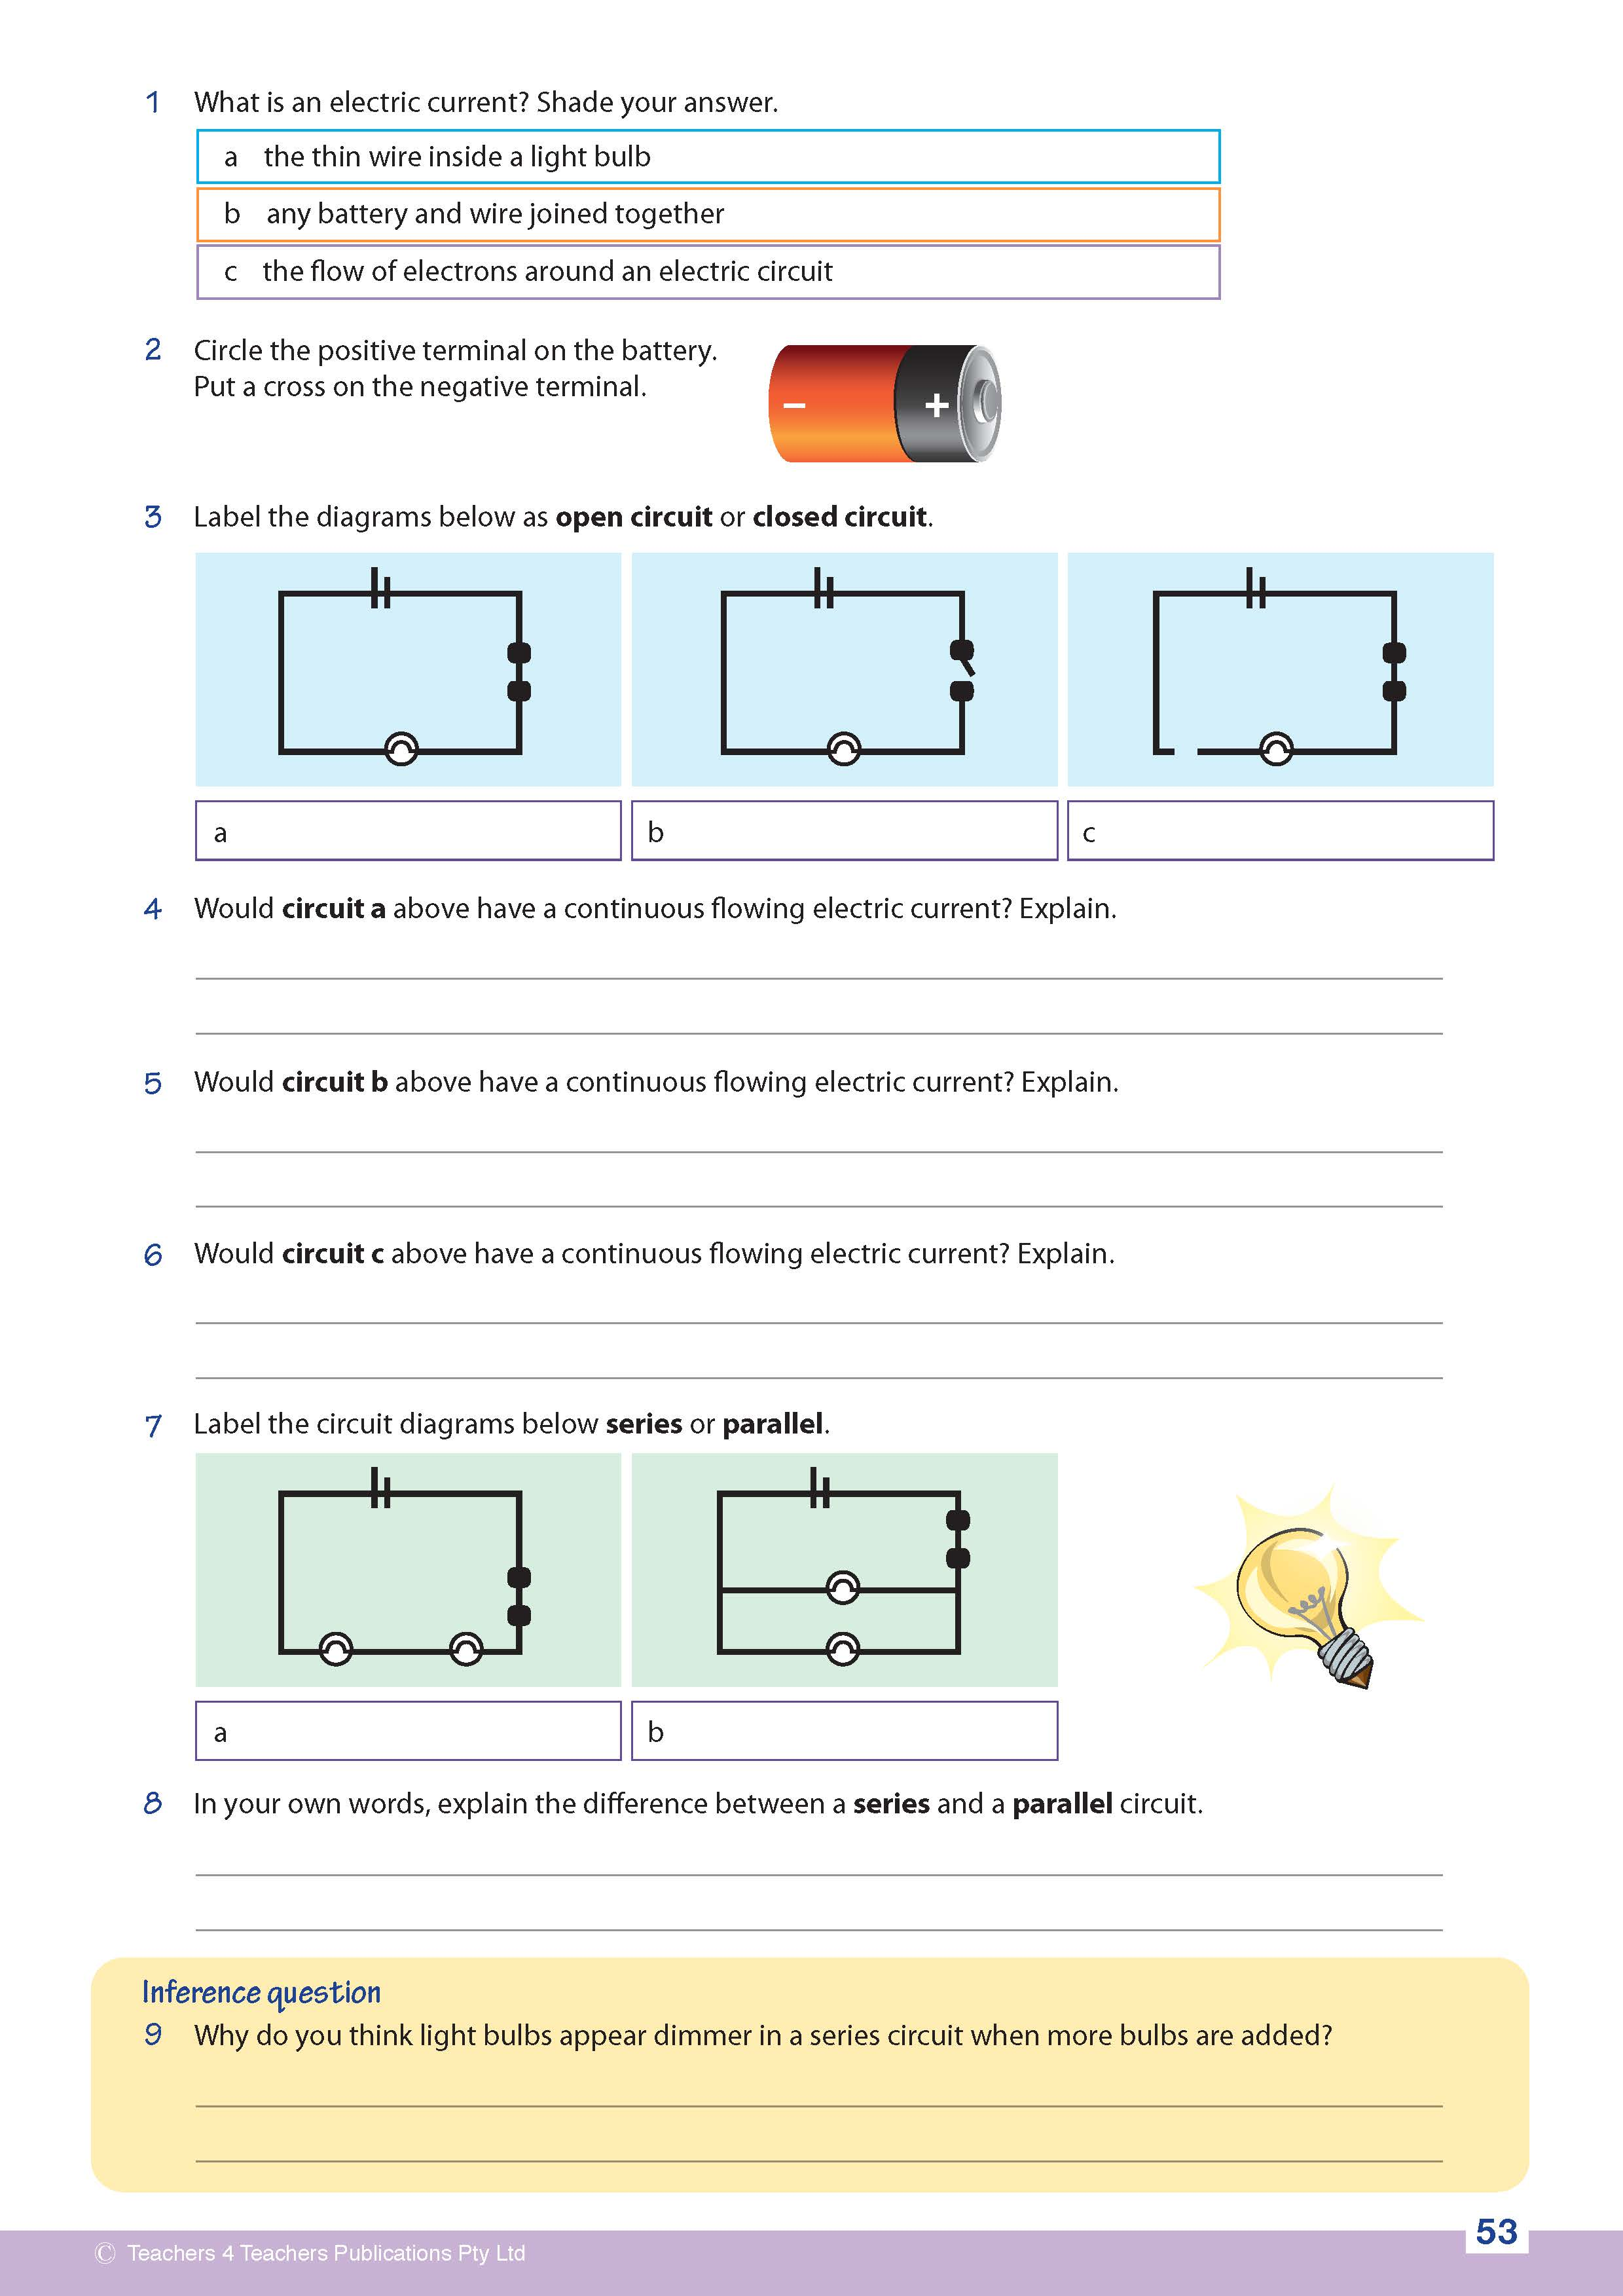 Science Now Teachers 4 Publications Pty Ltd Parallel Circuit Diagram 4th Grade Book Img 18